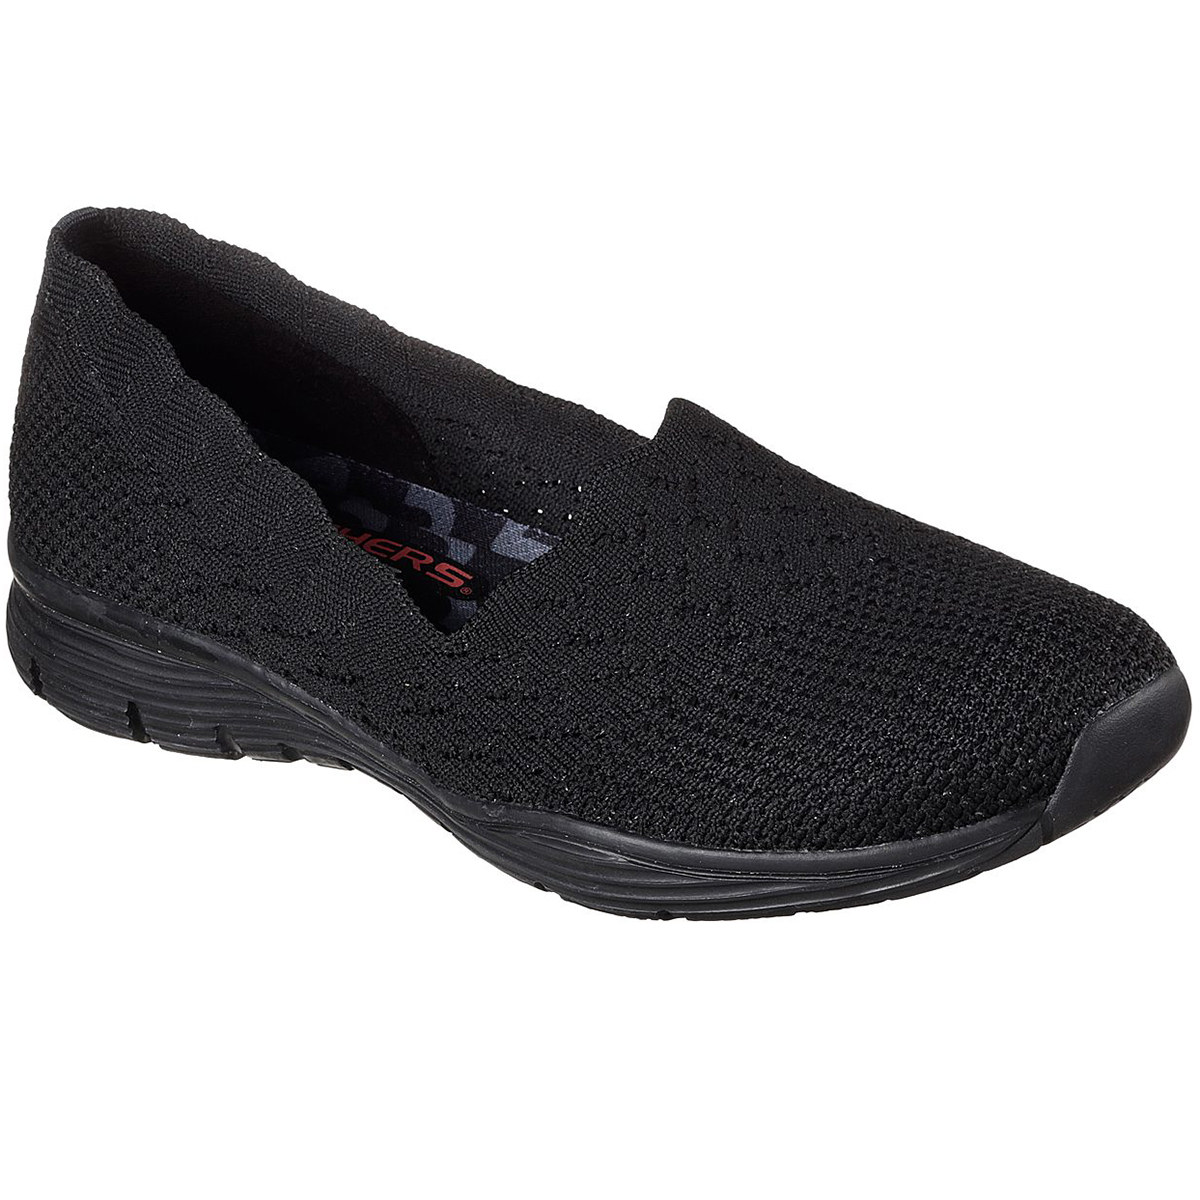 Skechers Women's Seager - Stat Casual Slip-On Shoes - Black, 11